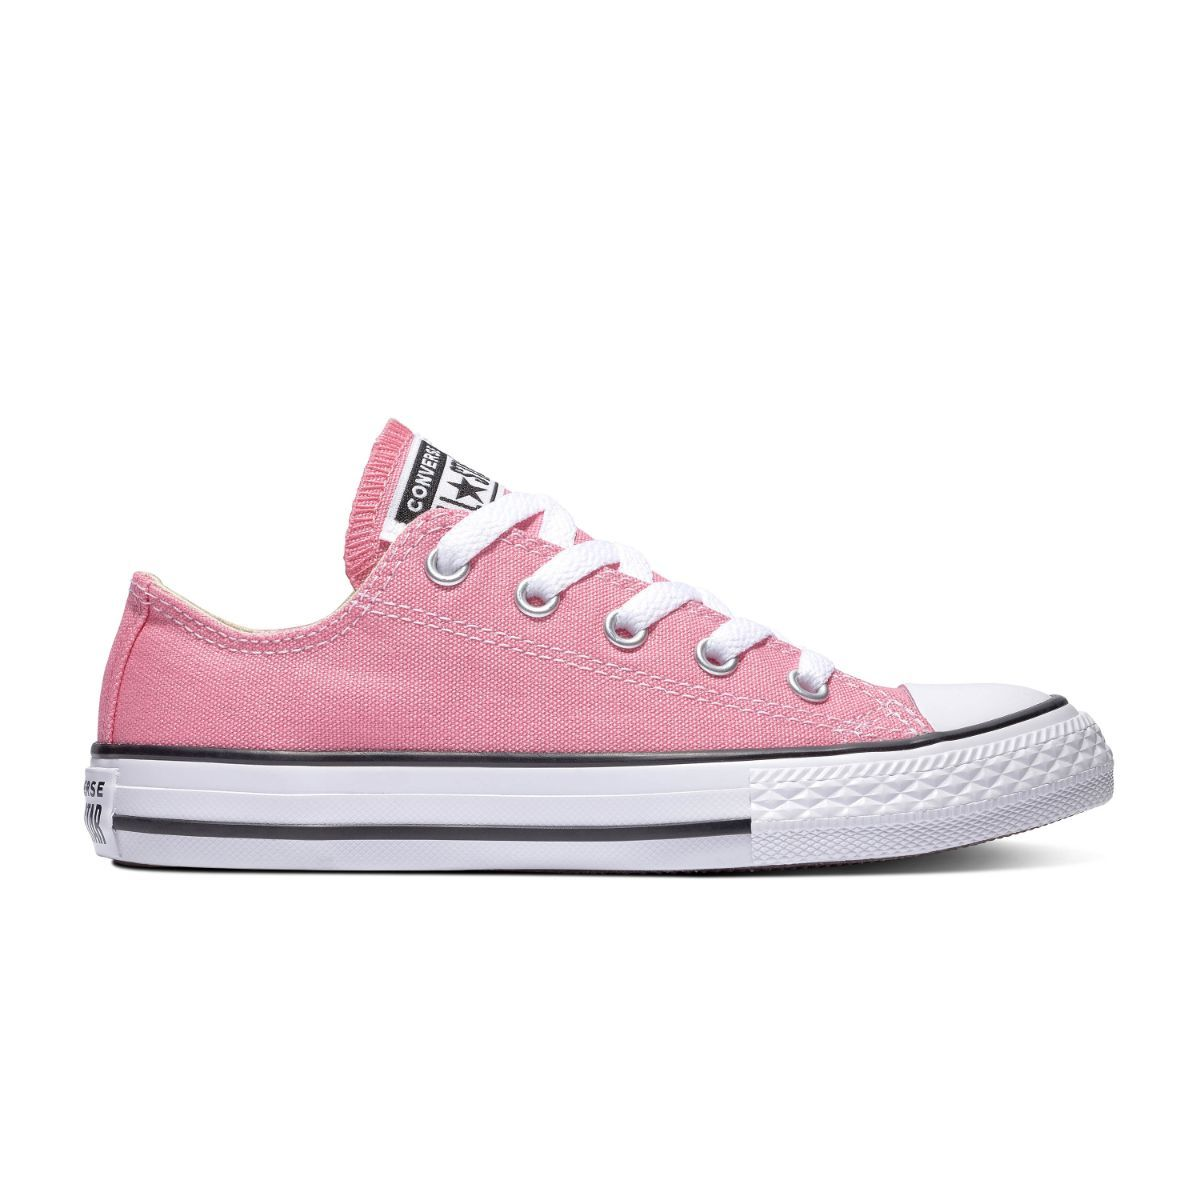 Little Kids Chuck Taylor All Star Pink Low Top